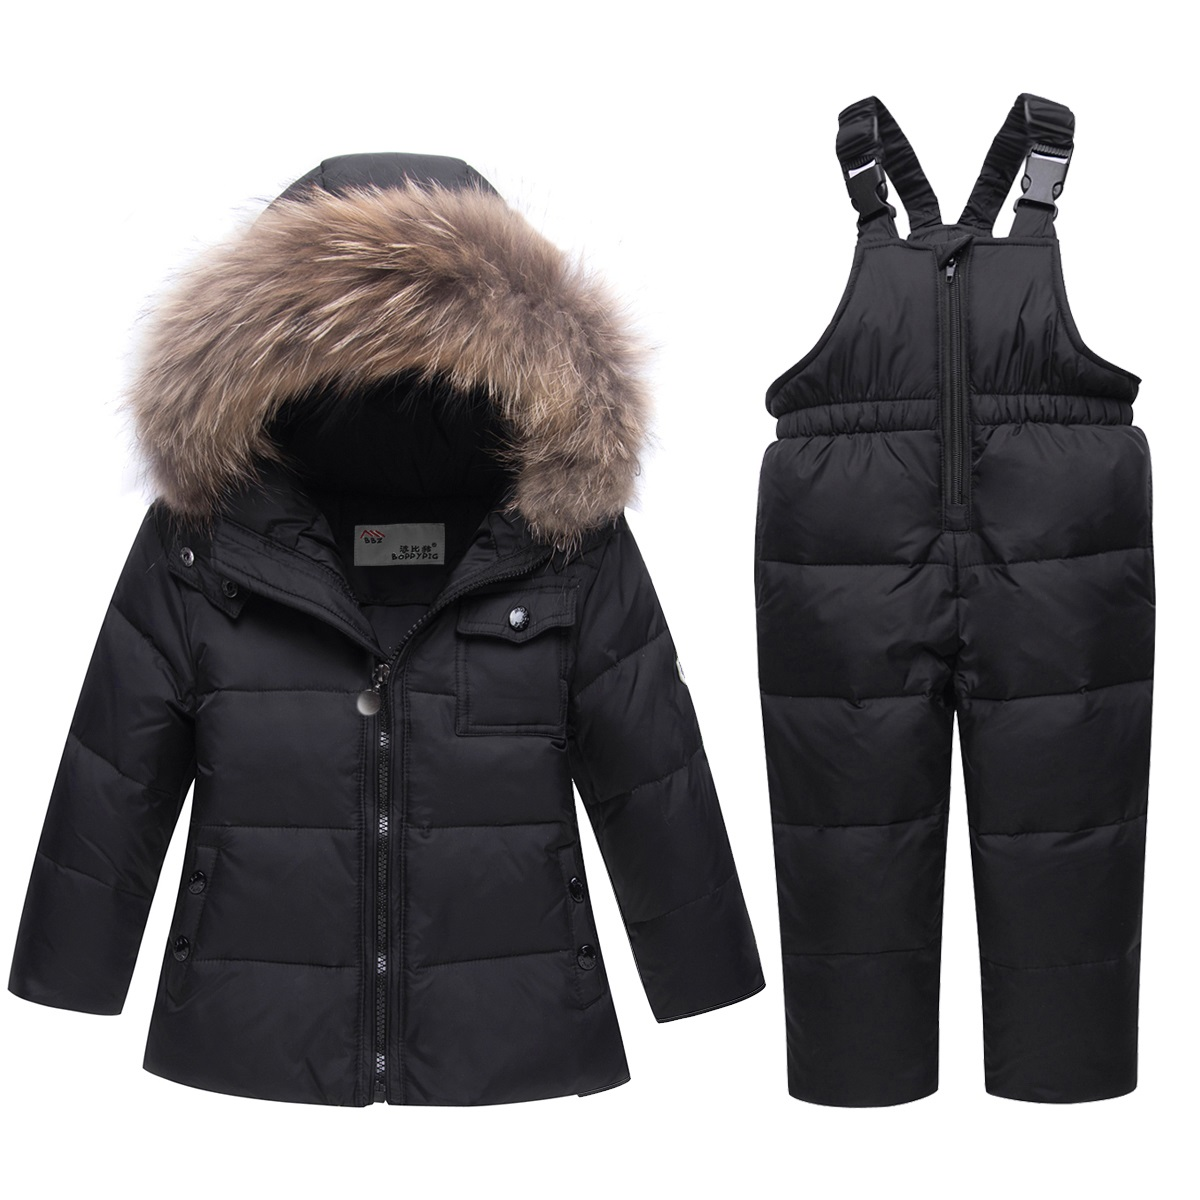 все цены на Raise Young -30 Degree Winter children Boy Clothes set Warm Down Jacket Coat + Jumpsuit For Girl 1-5 Year Kid Baby Girl Snowsuit онлайн